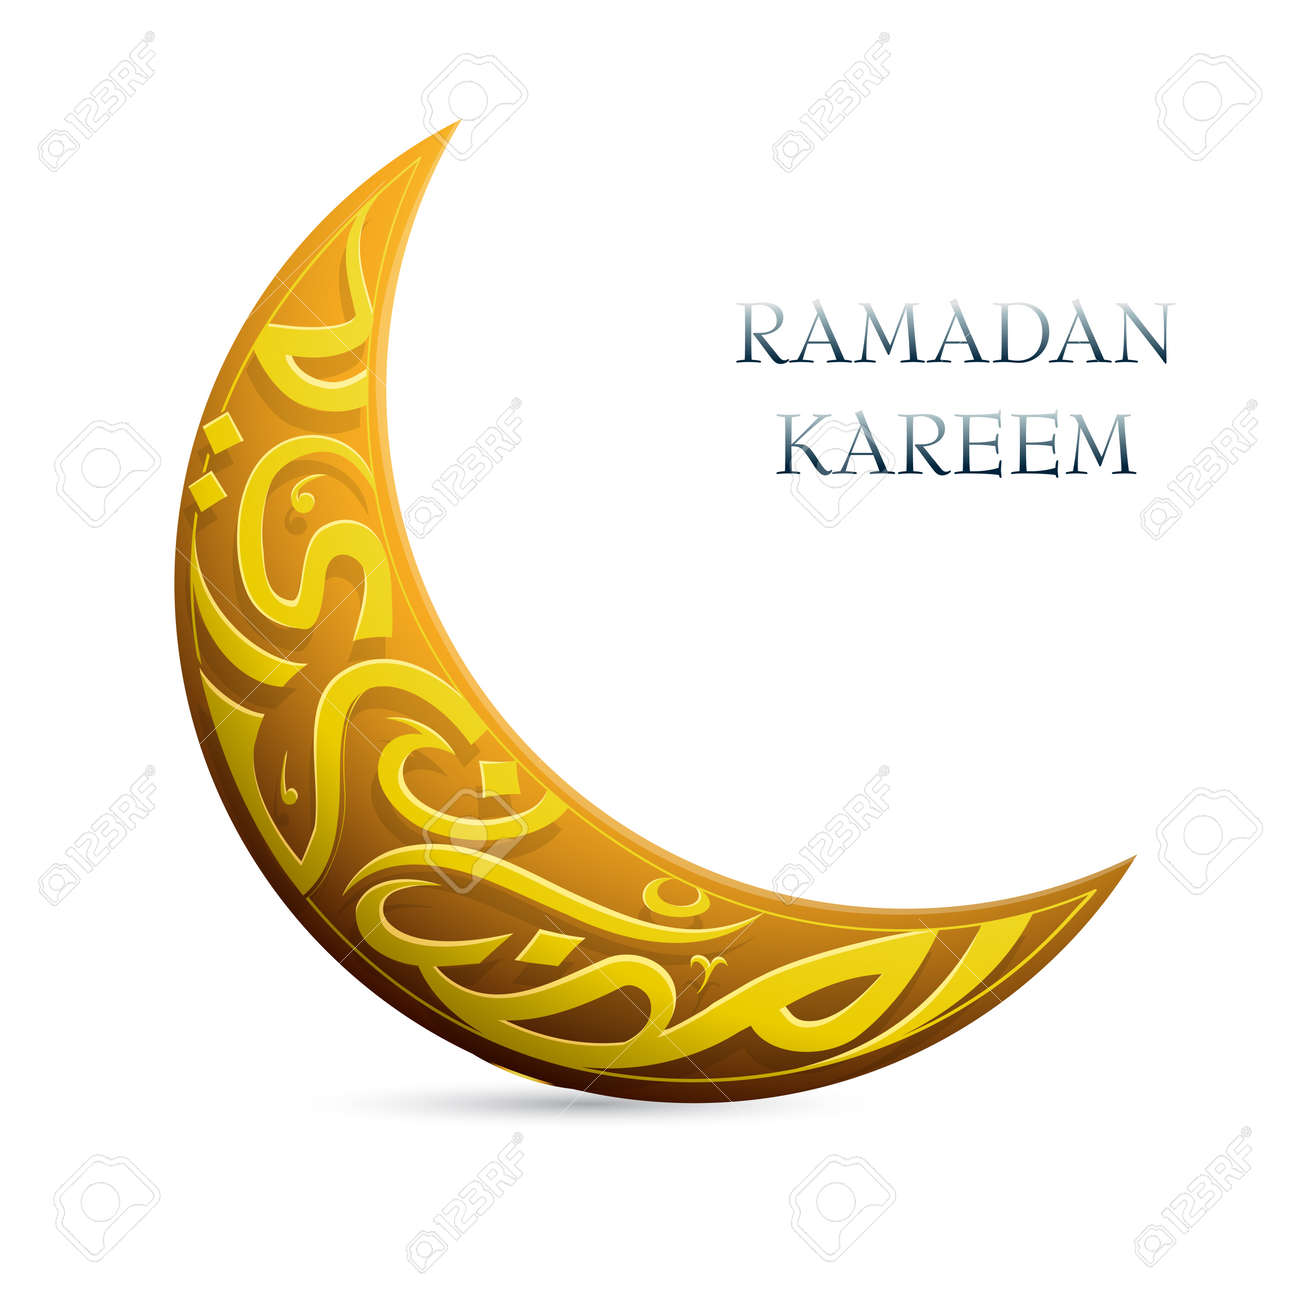 Artistic Islamic Calligraphy Shaped Into Crescent Moon Shape For Ramadan Kareem Greetings Stock Vector